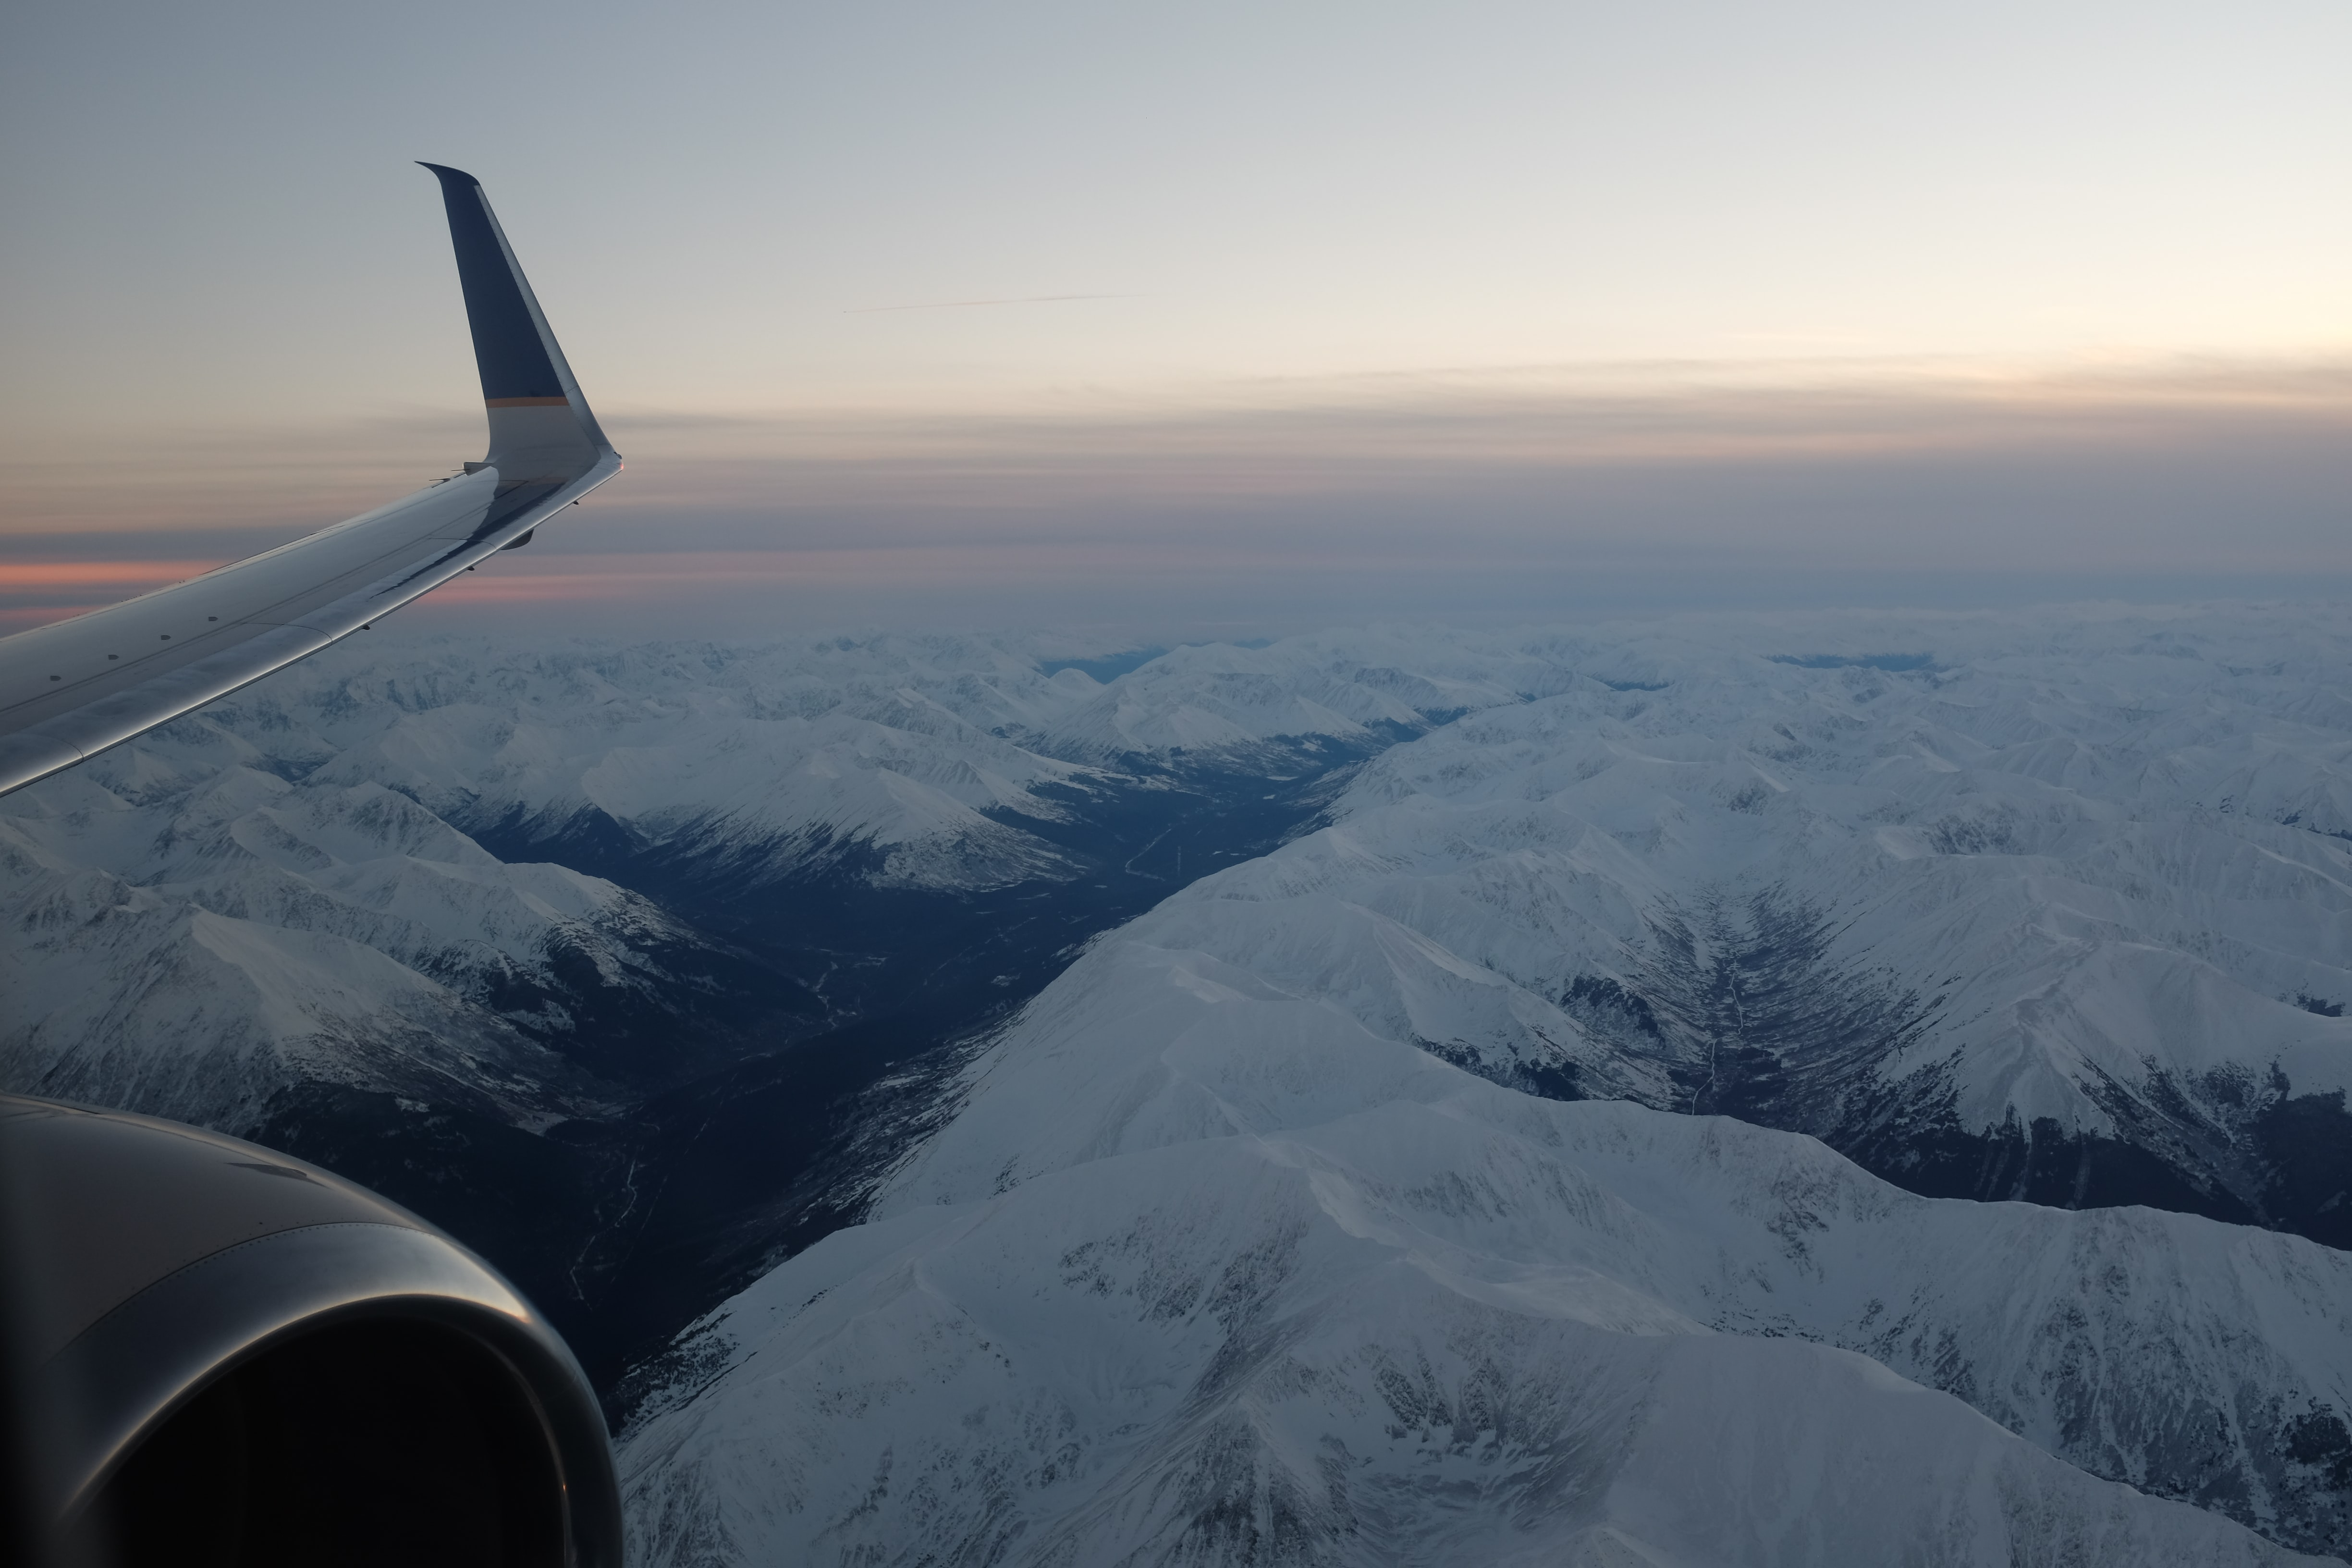 airplane flying above snowy mountains